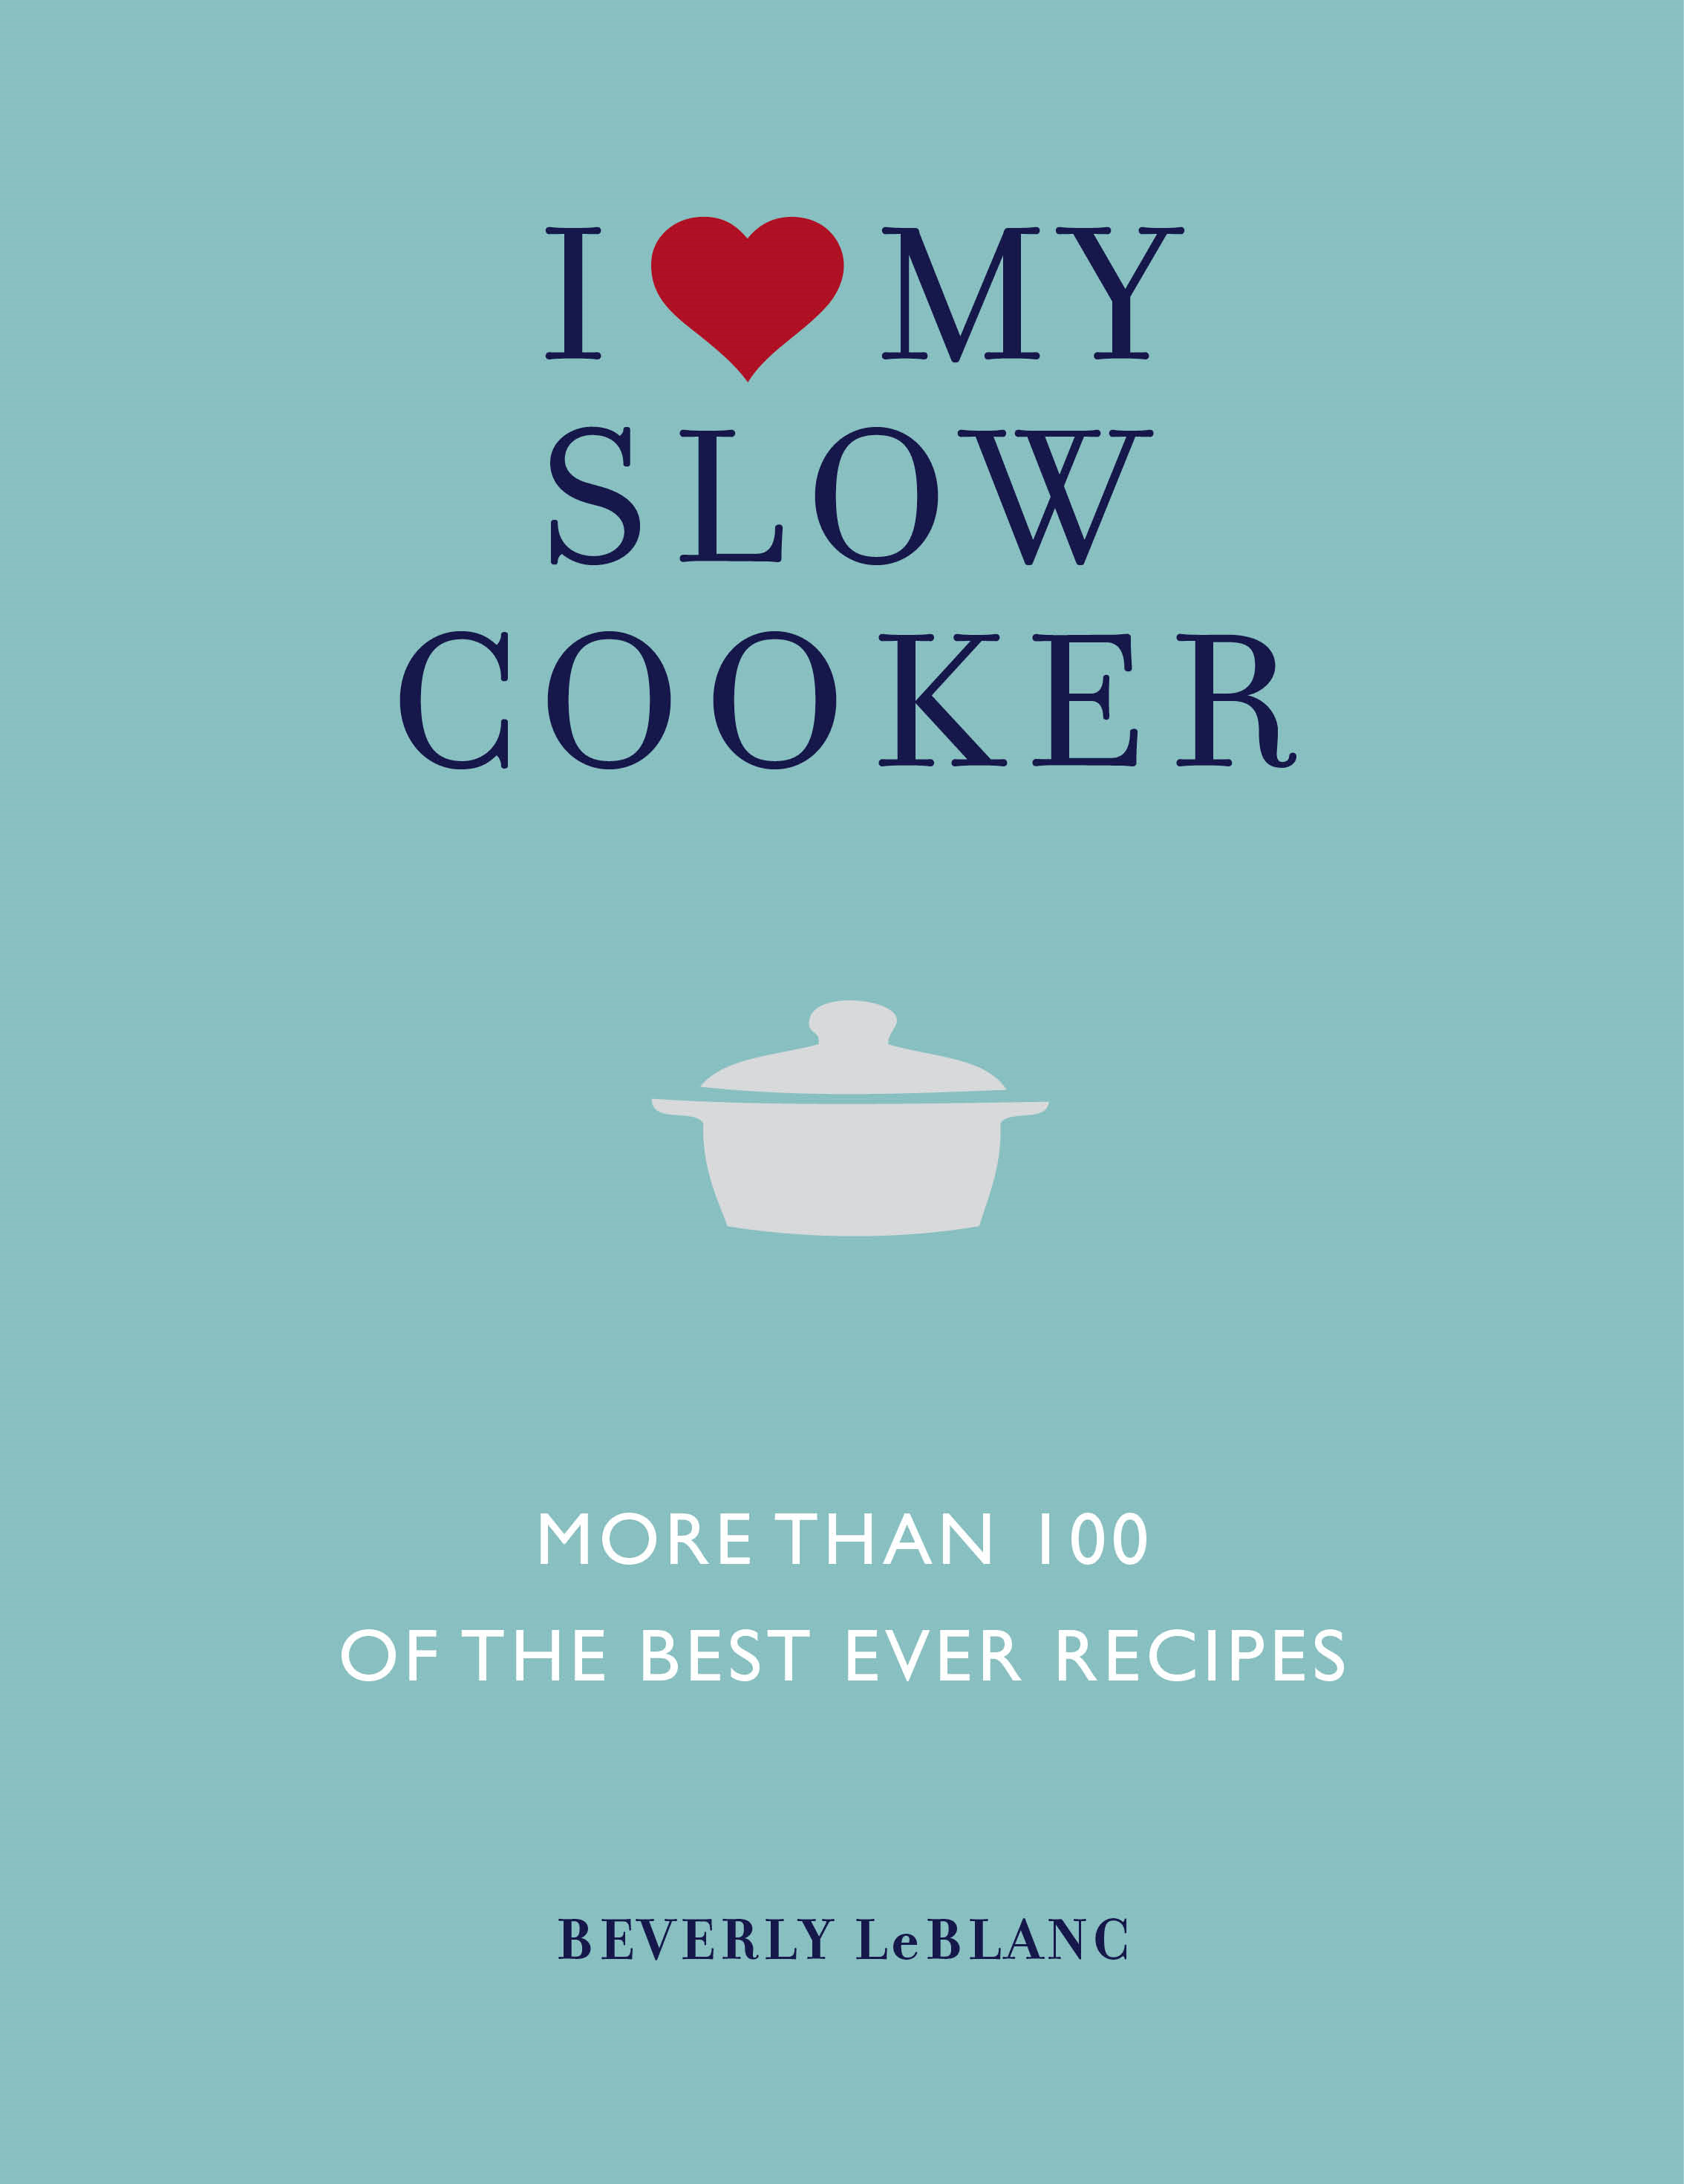 I Love My Slow Cooker - More than 100 of the Best-Ever Slow Cooker Recipes